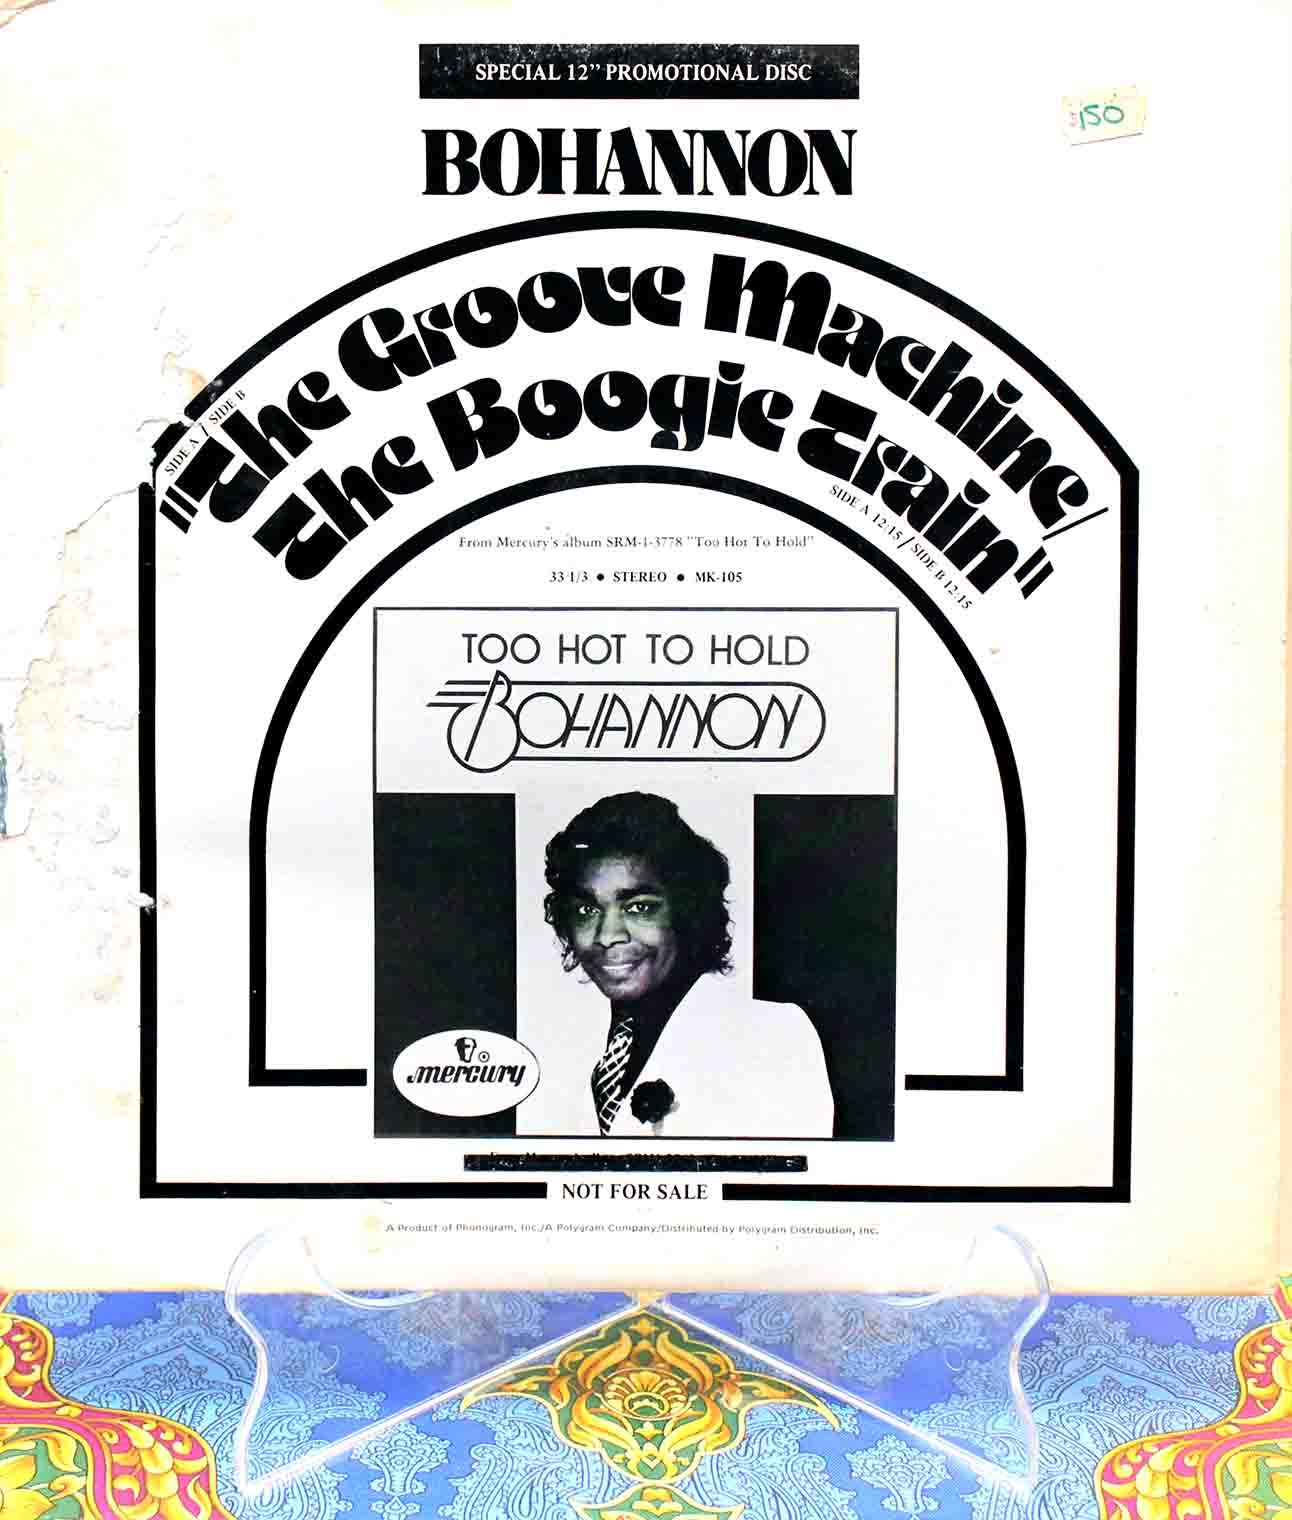 Bohannon - The Groove Machine 01